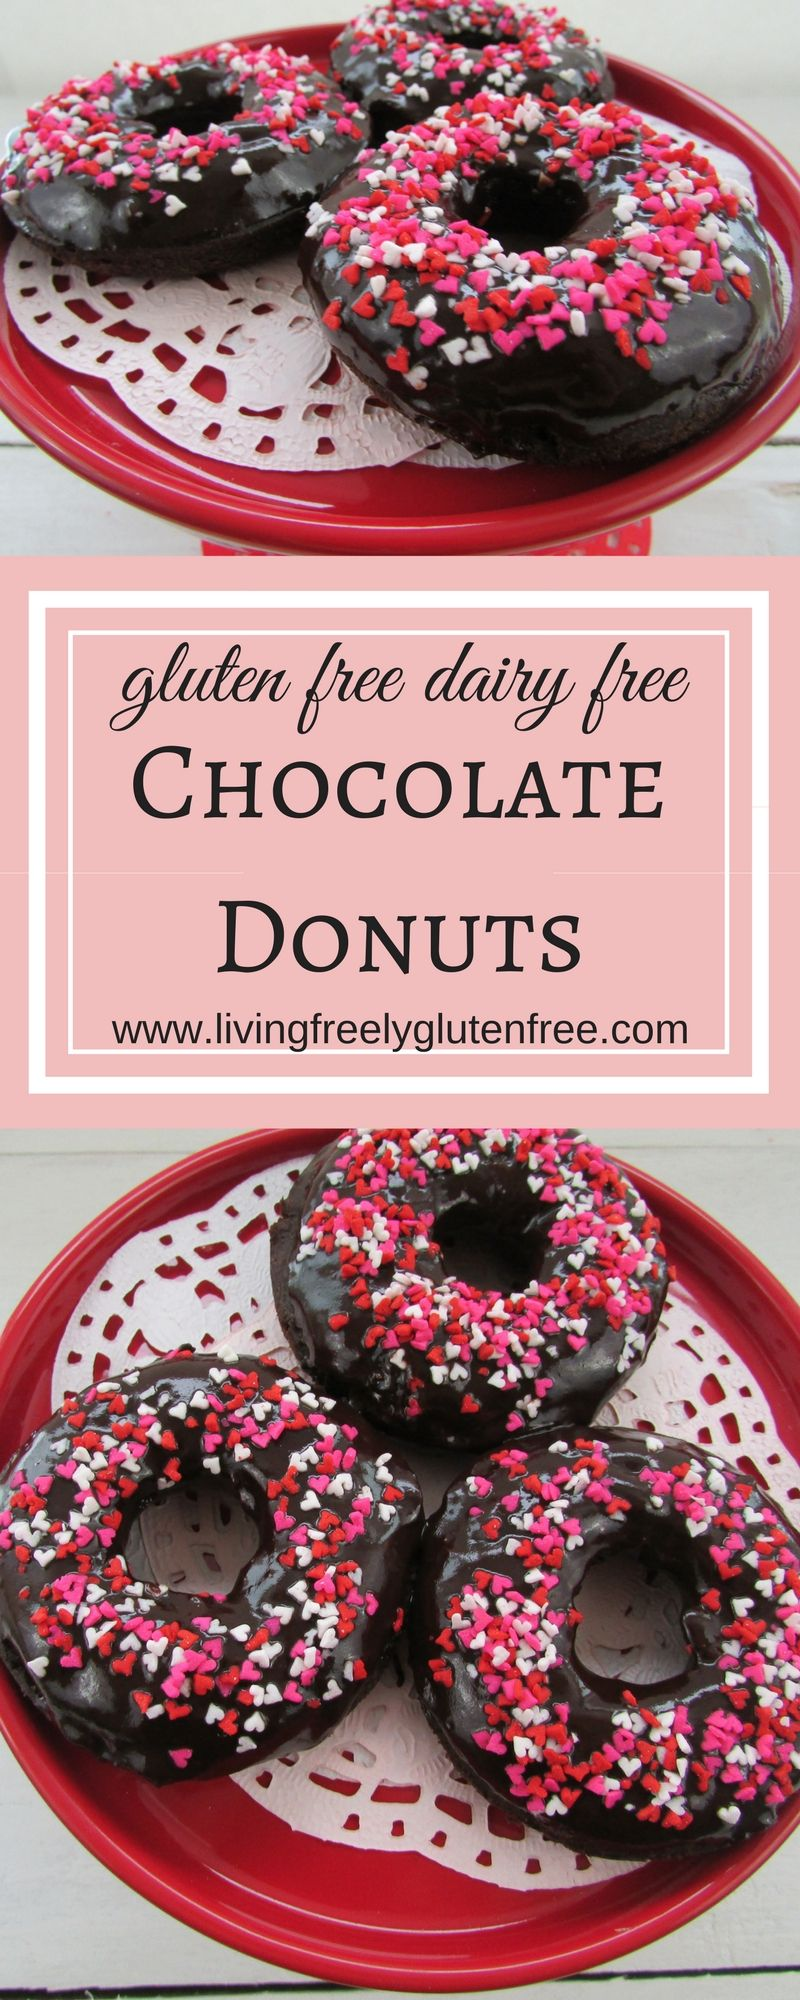 Delicious gluten free and dairy free chocolate donuts are perfect for a brunch or just because. www.livingfreelyglutenfree.com